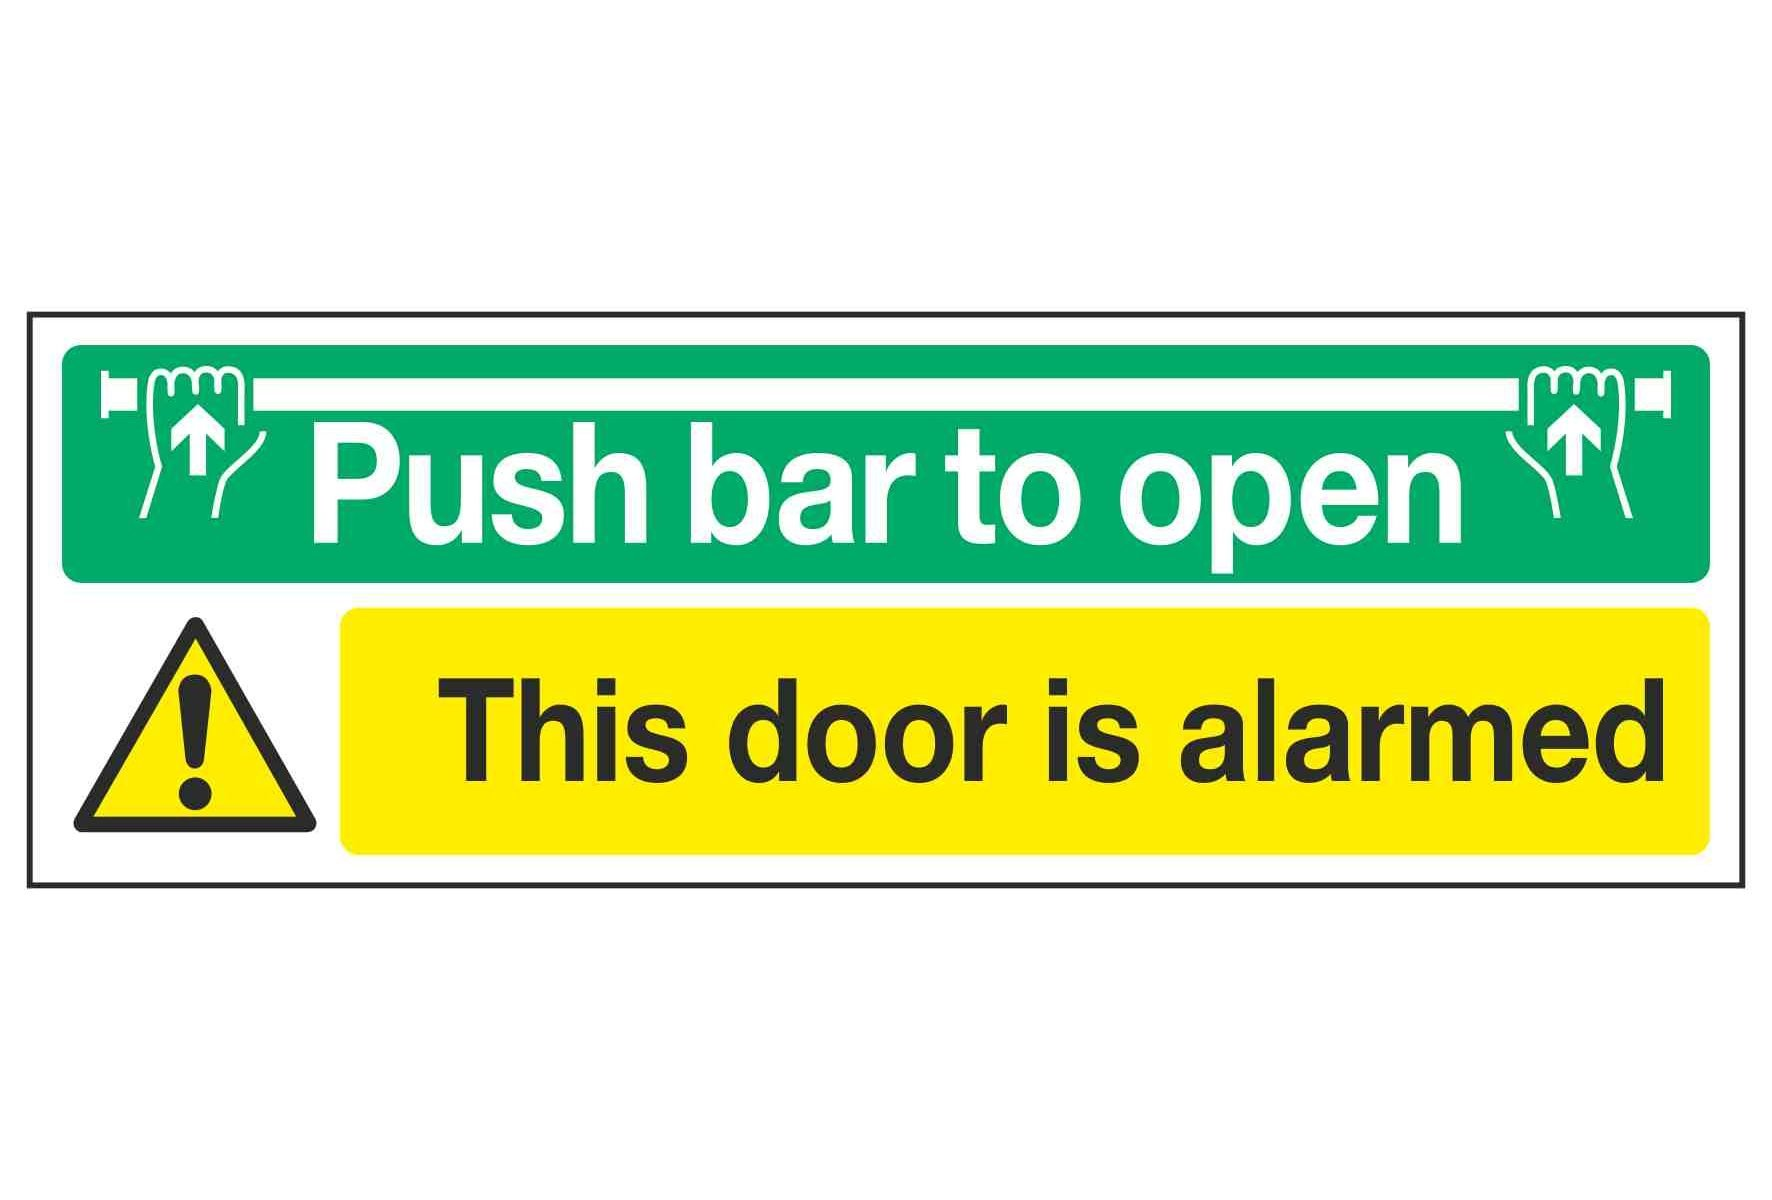 Push bar to open / This door is alarmed